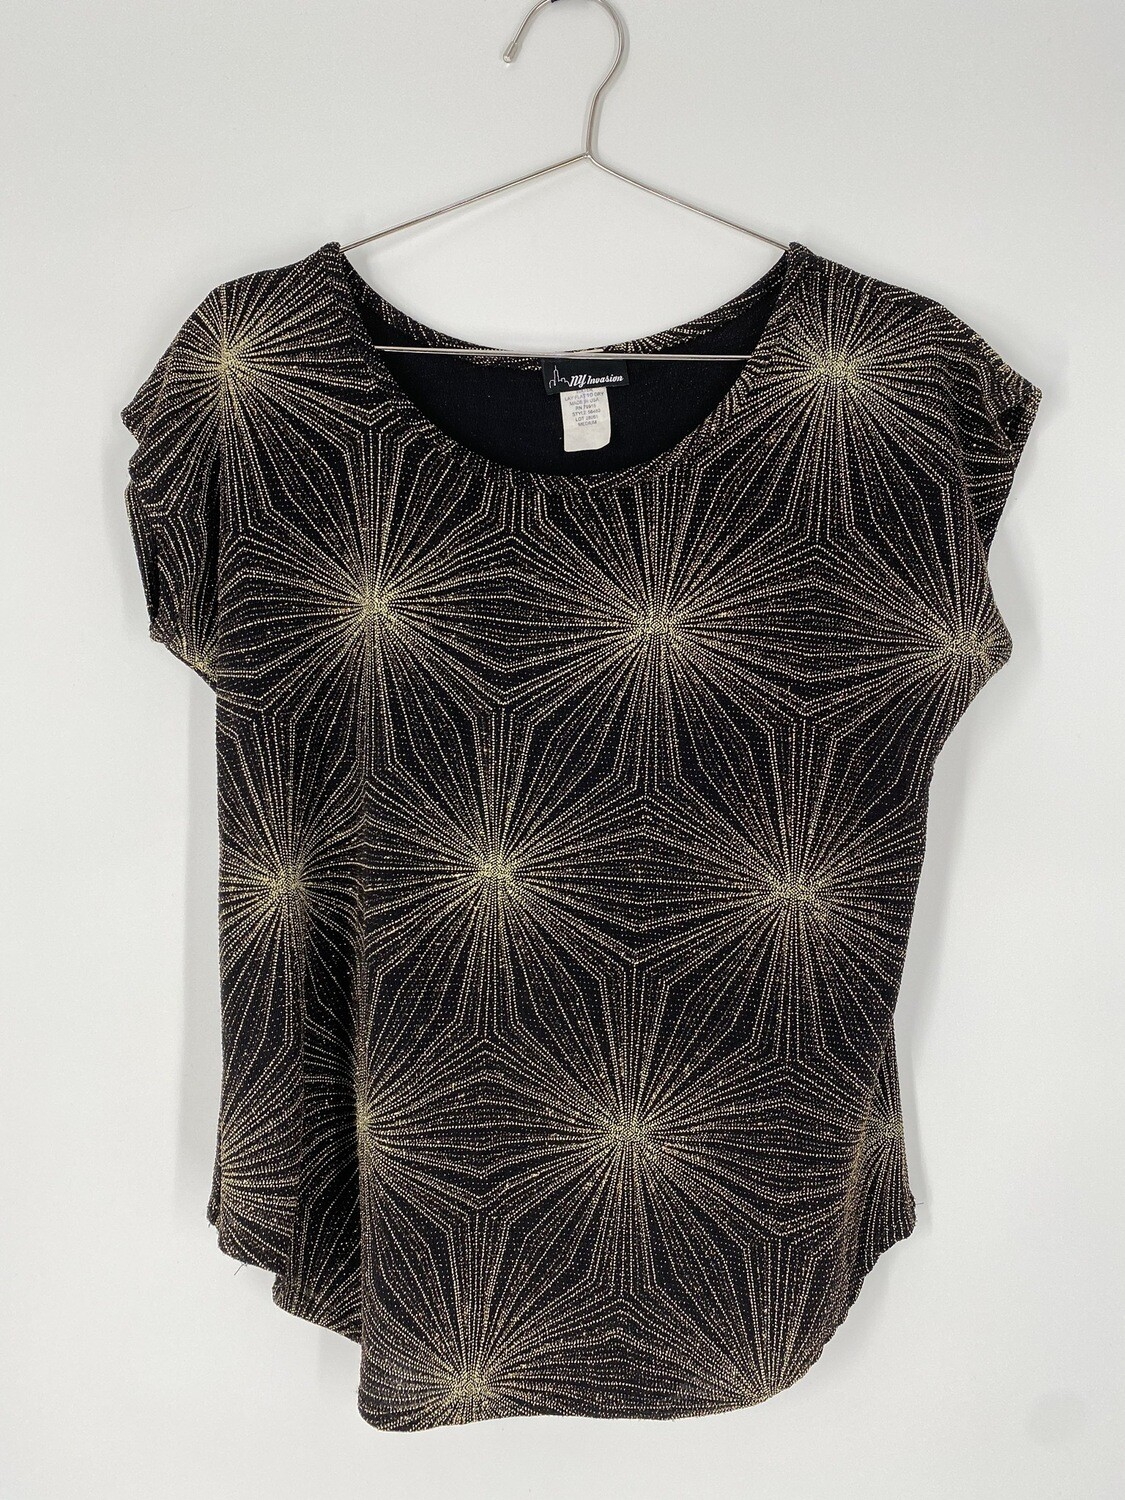 NY Invasion Sparkly Top Size M